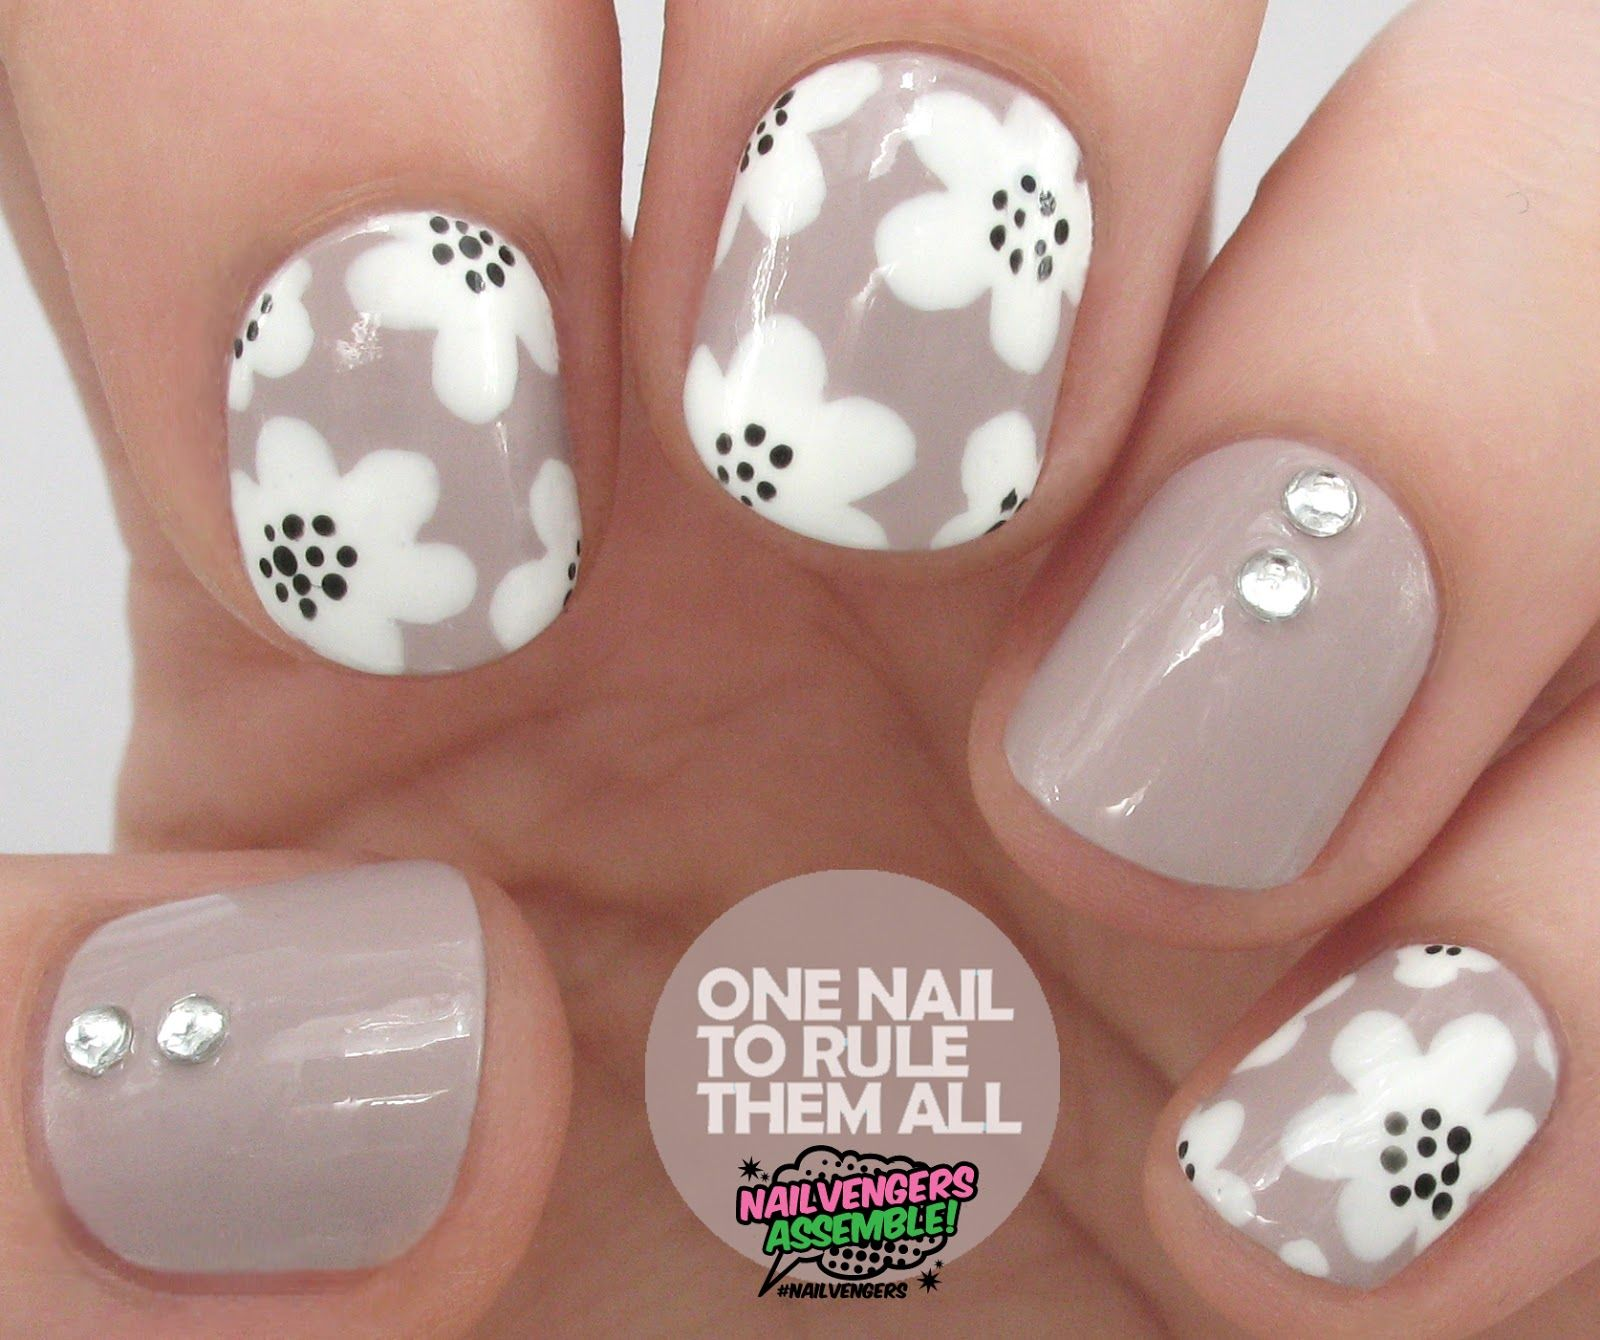 One nail to rule them all nail nails nailart uas pinterest explore nail flowers white flowers and more mightylinksfo